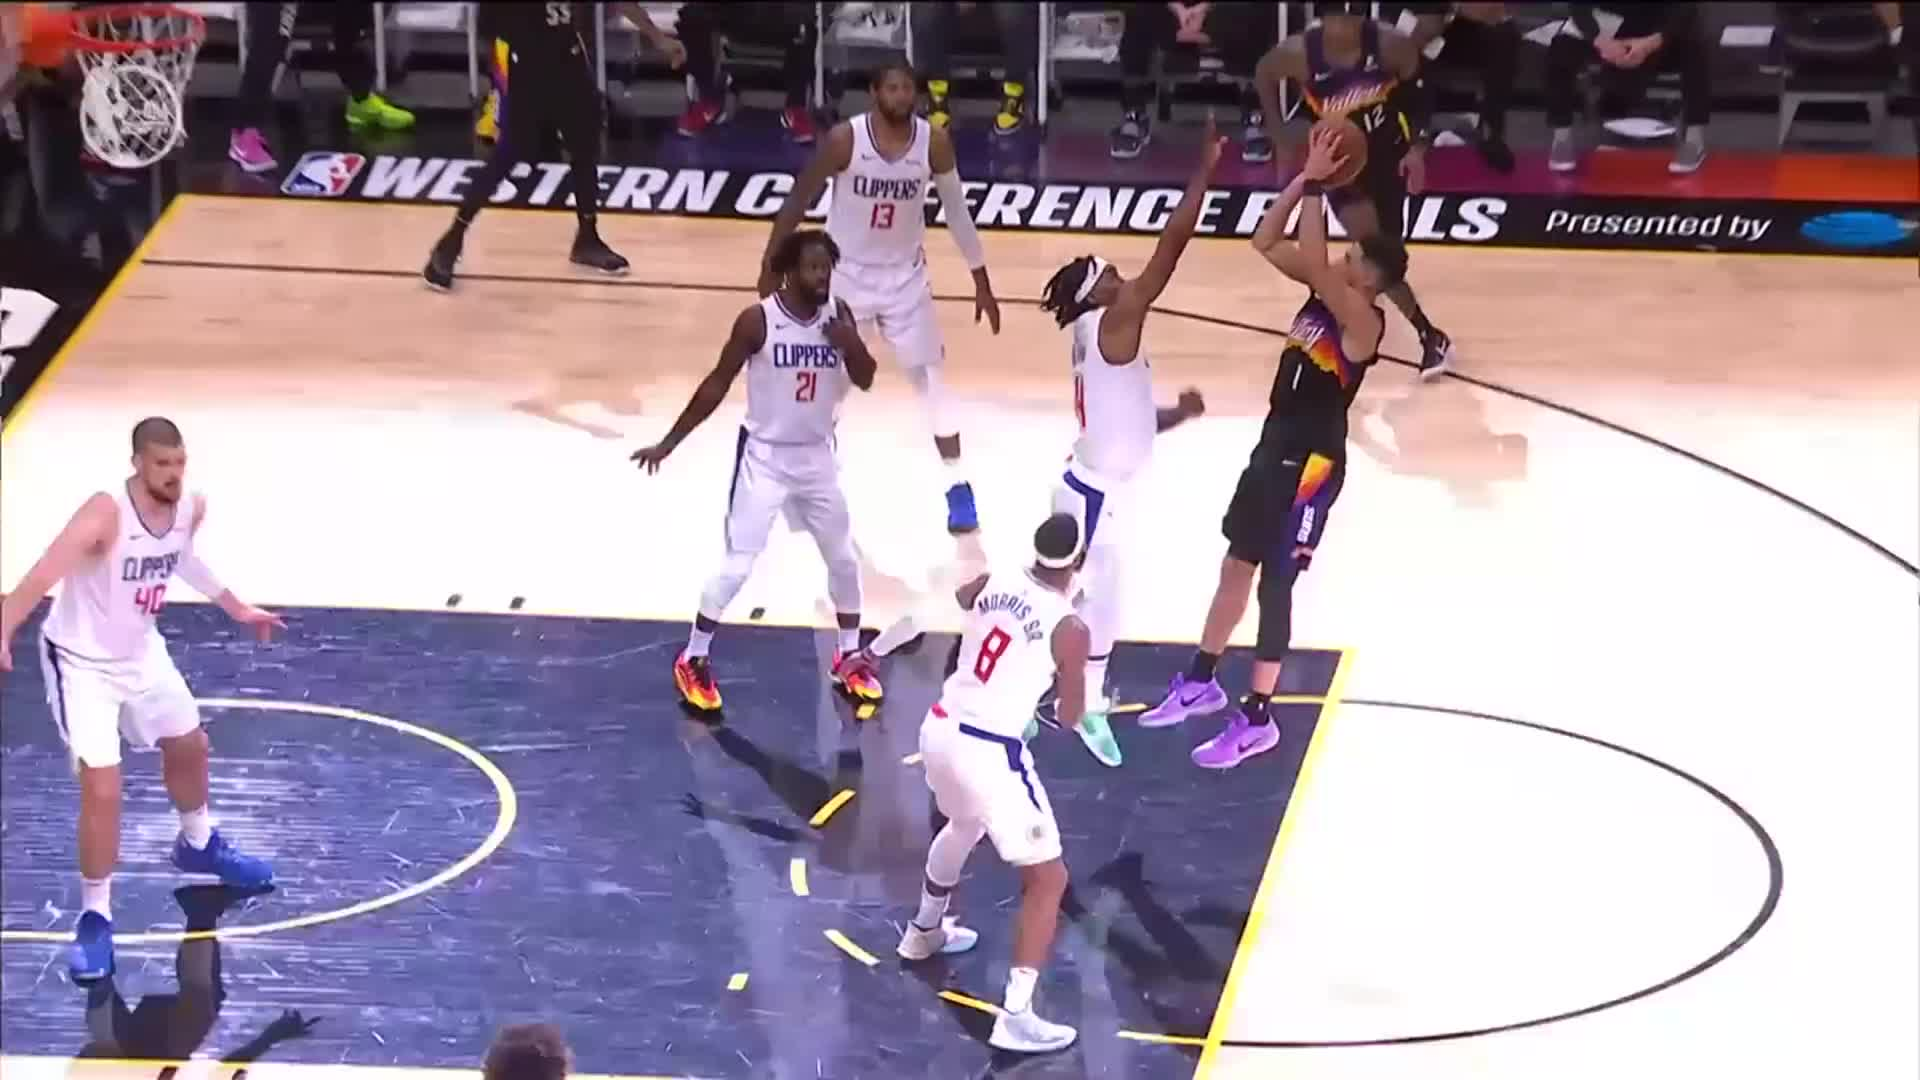 Suns vs Clippers Highlights: Game 1